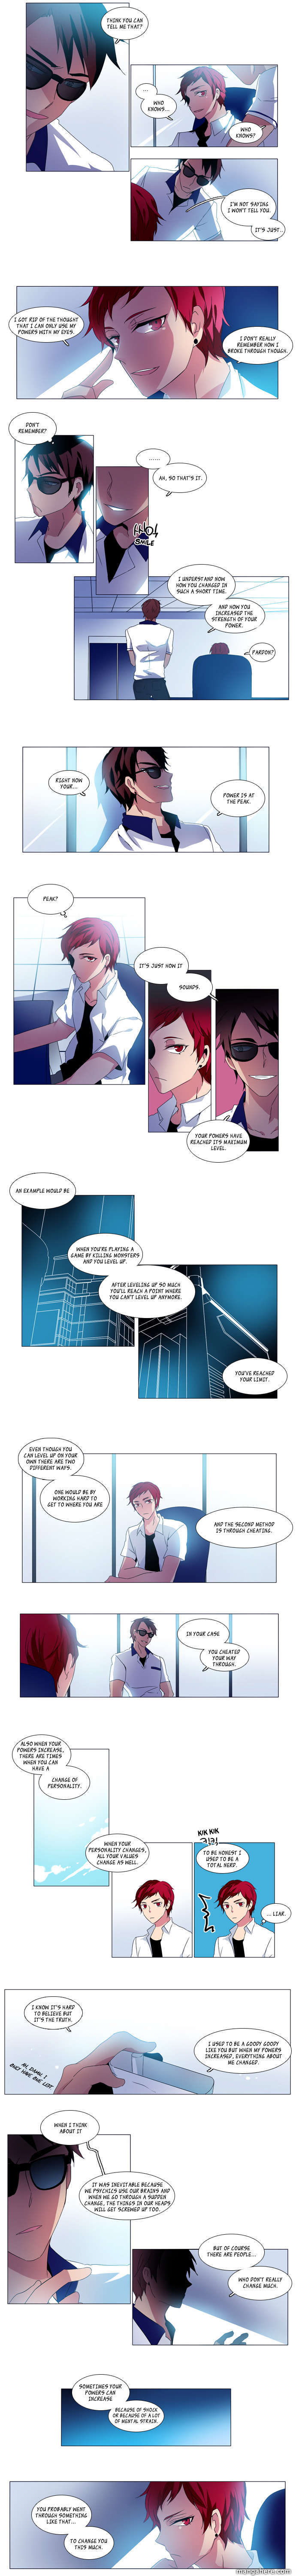 Wonted 17 Page 3